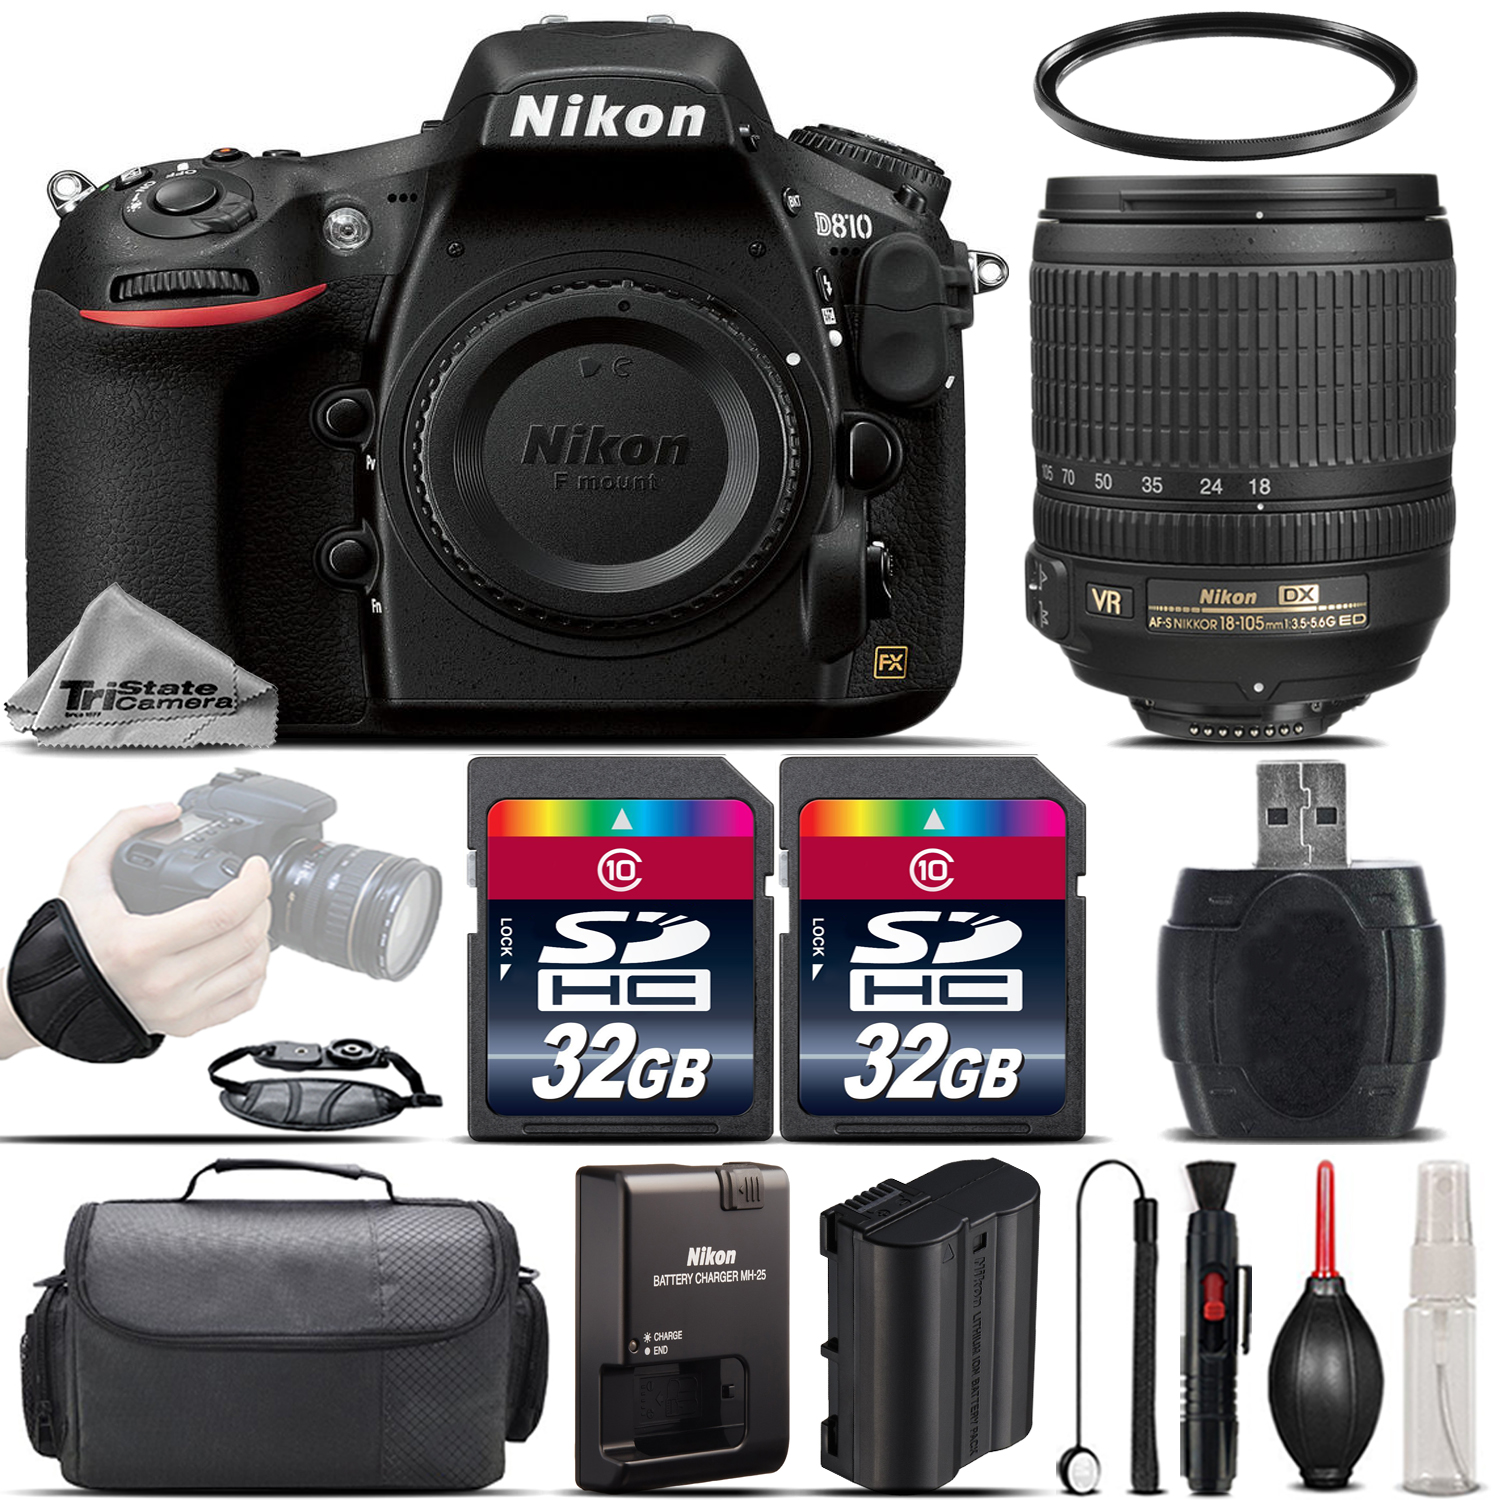 D810 DSLR 36.3MP FX Camera + Nikon 18-105mm VR Lens + Wrist Grip- 64GB Kit *FREE SHIPPING*